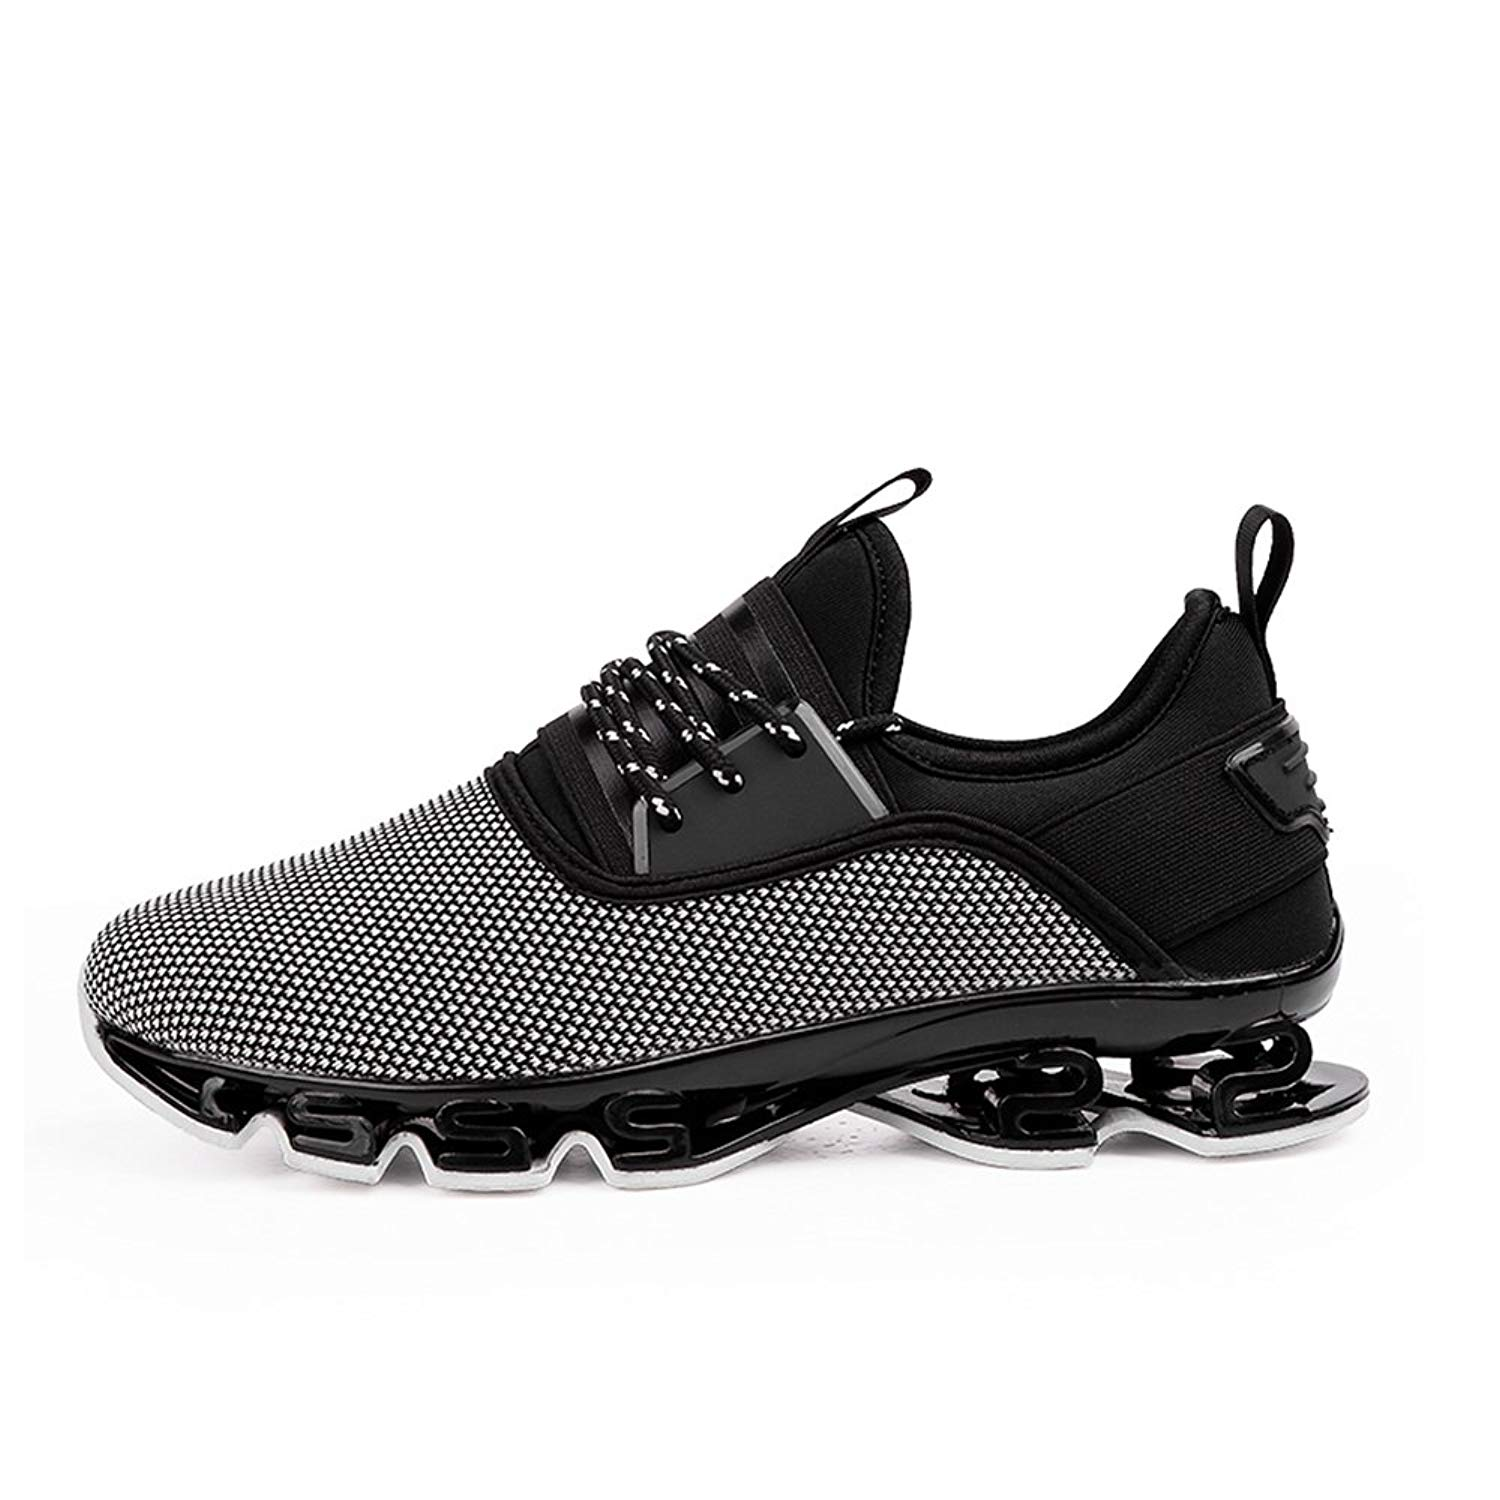 80acc0c2753f Get Quotations · HooyFeel Men s Non-Slip Sneaker Breathable Mesh Athletic  Running Shoes Walking Springblade Sport Shoes